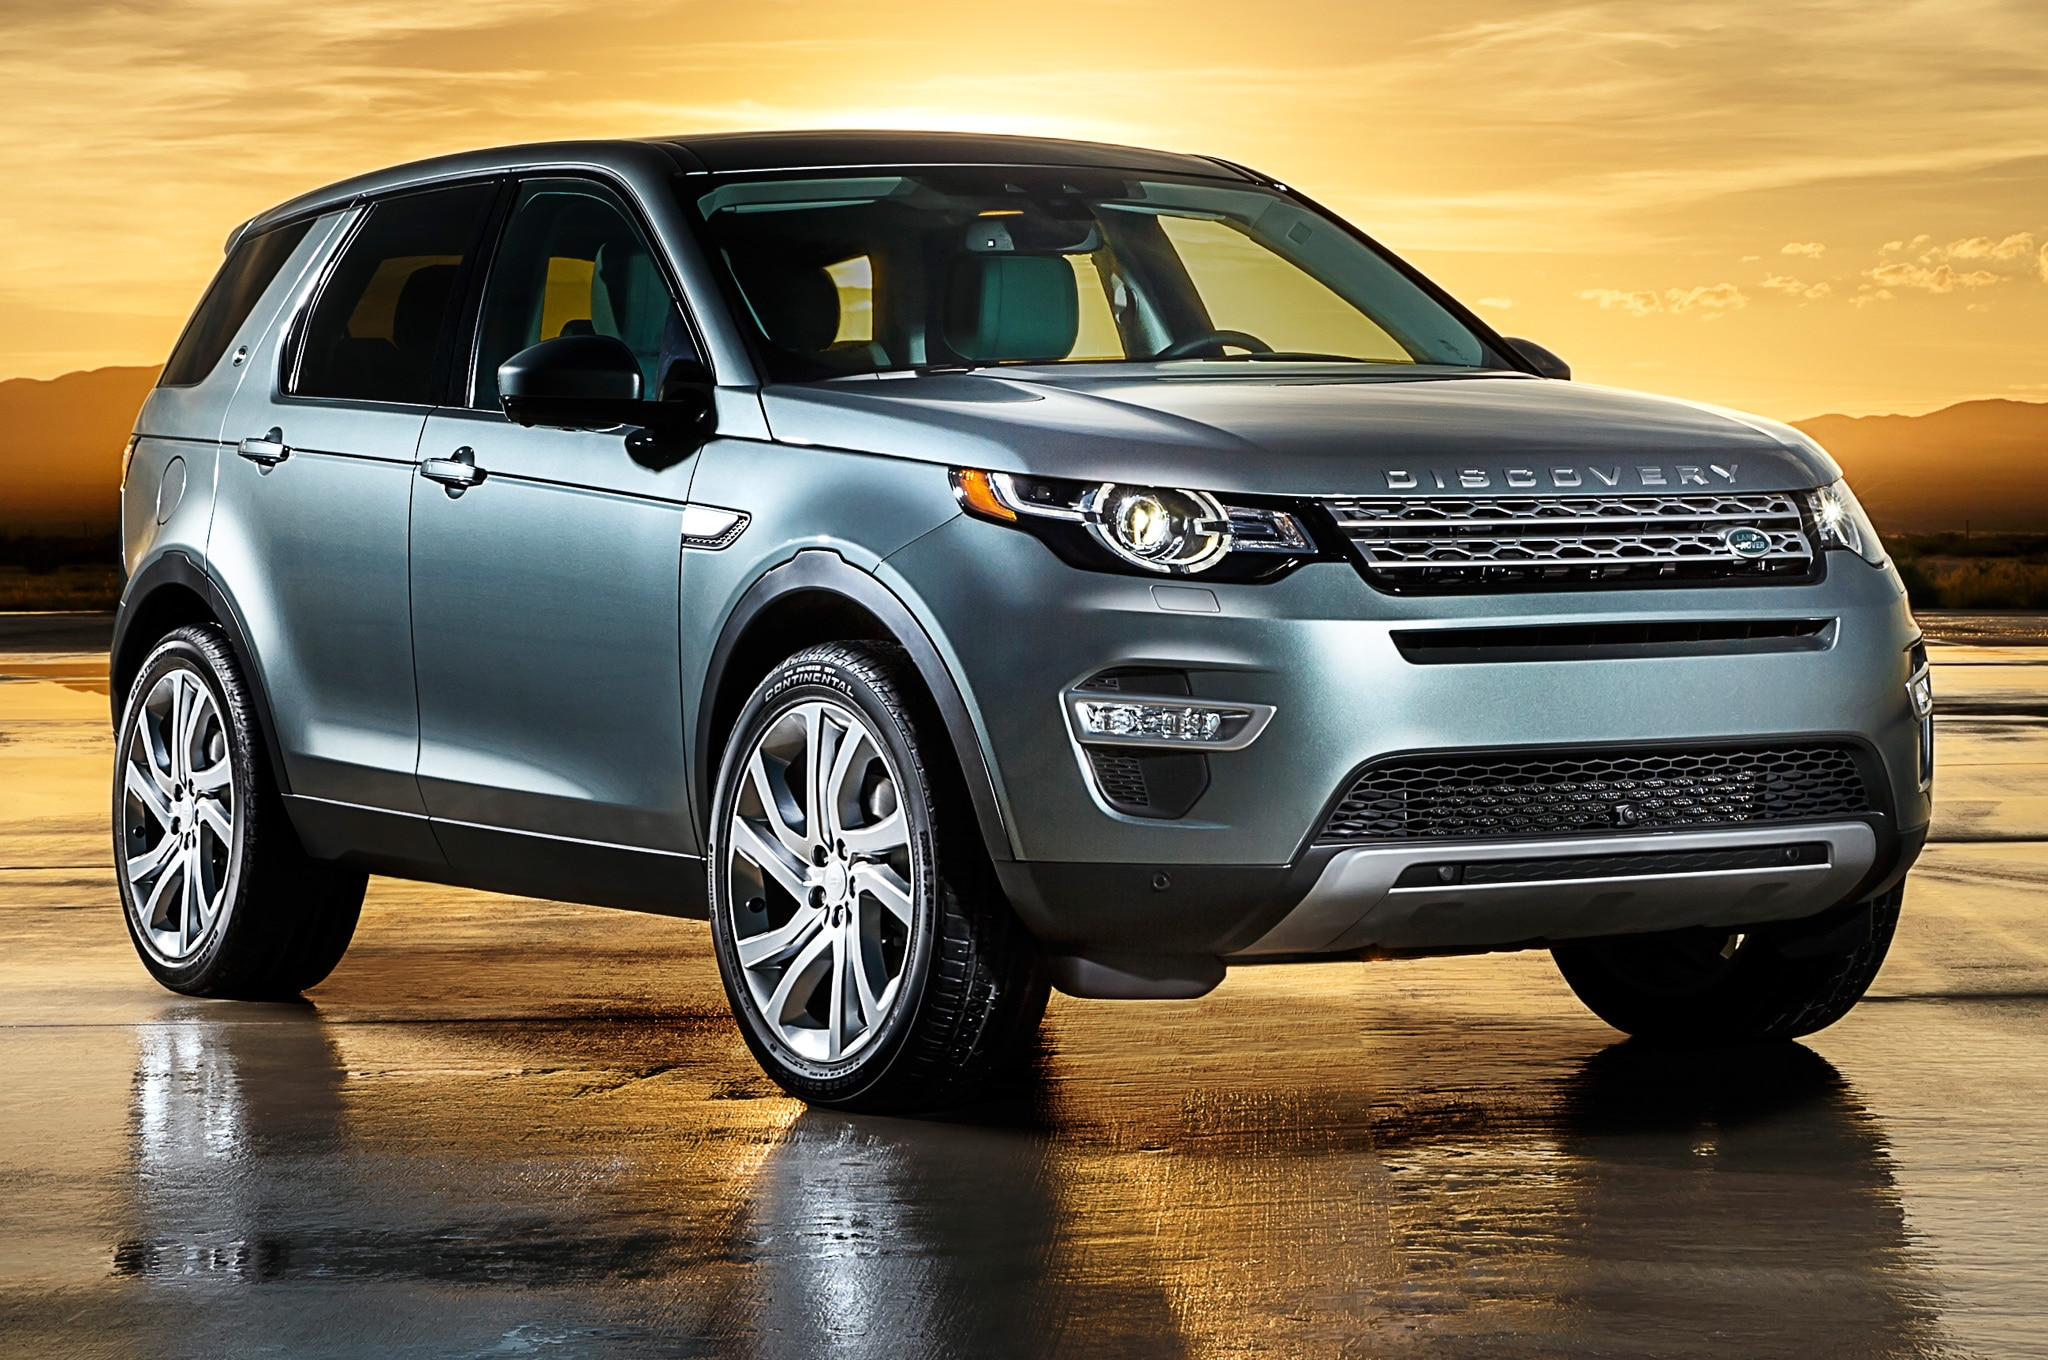 2015 Land Rover Discovery Sport Front Side View